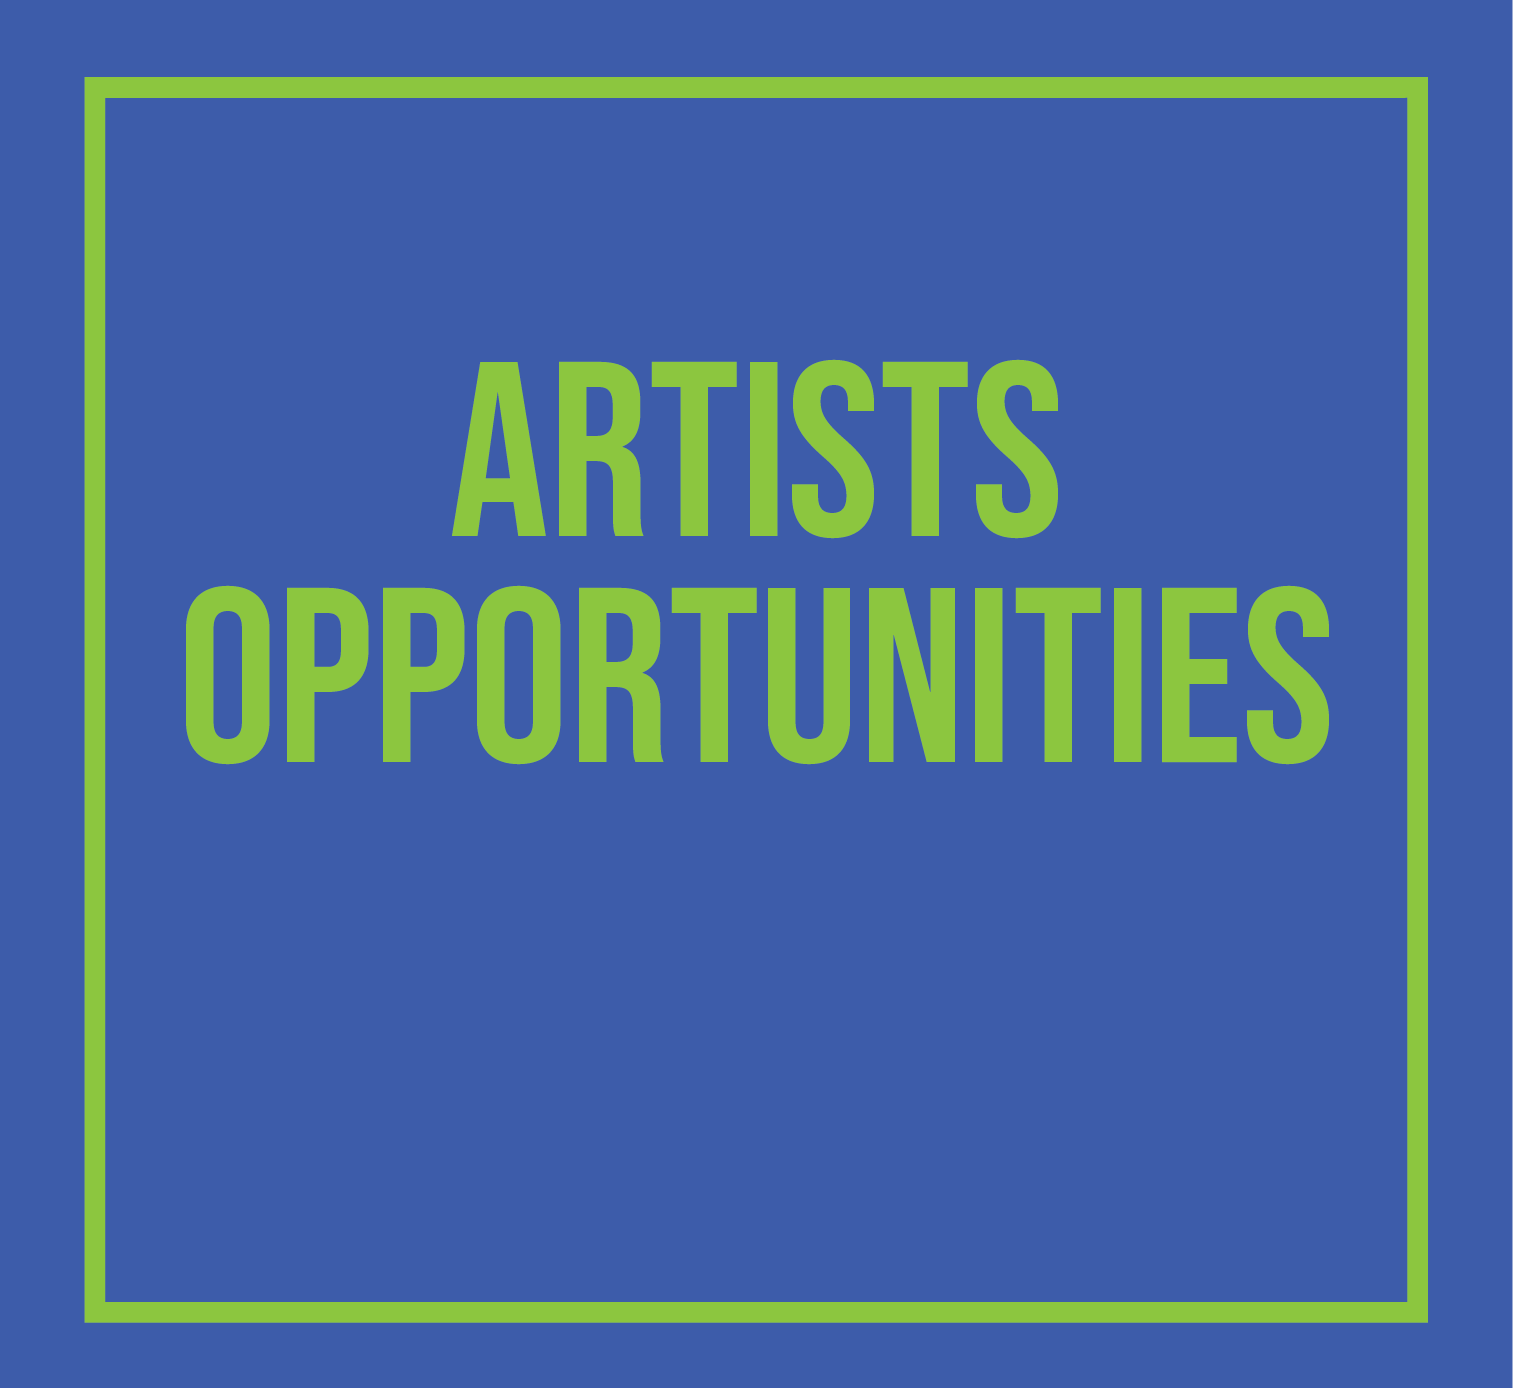 Artists Opportunities